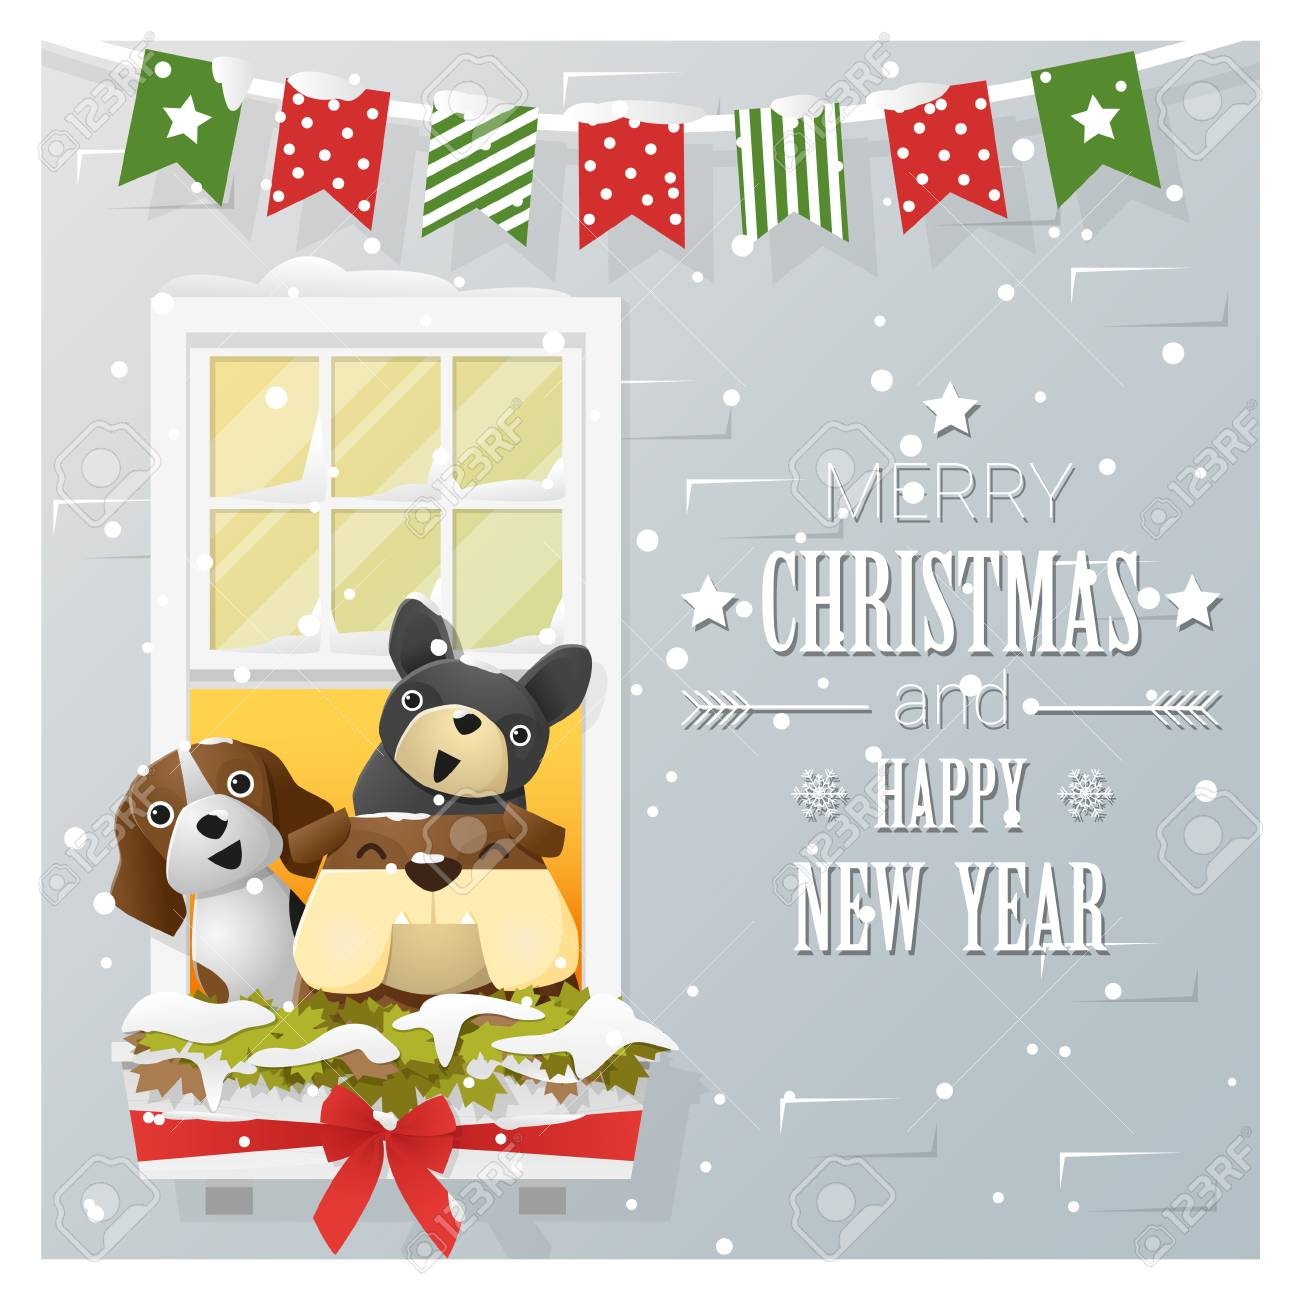 merry christmas and happy new year greeting card with dog family vector illustration stock